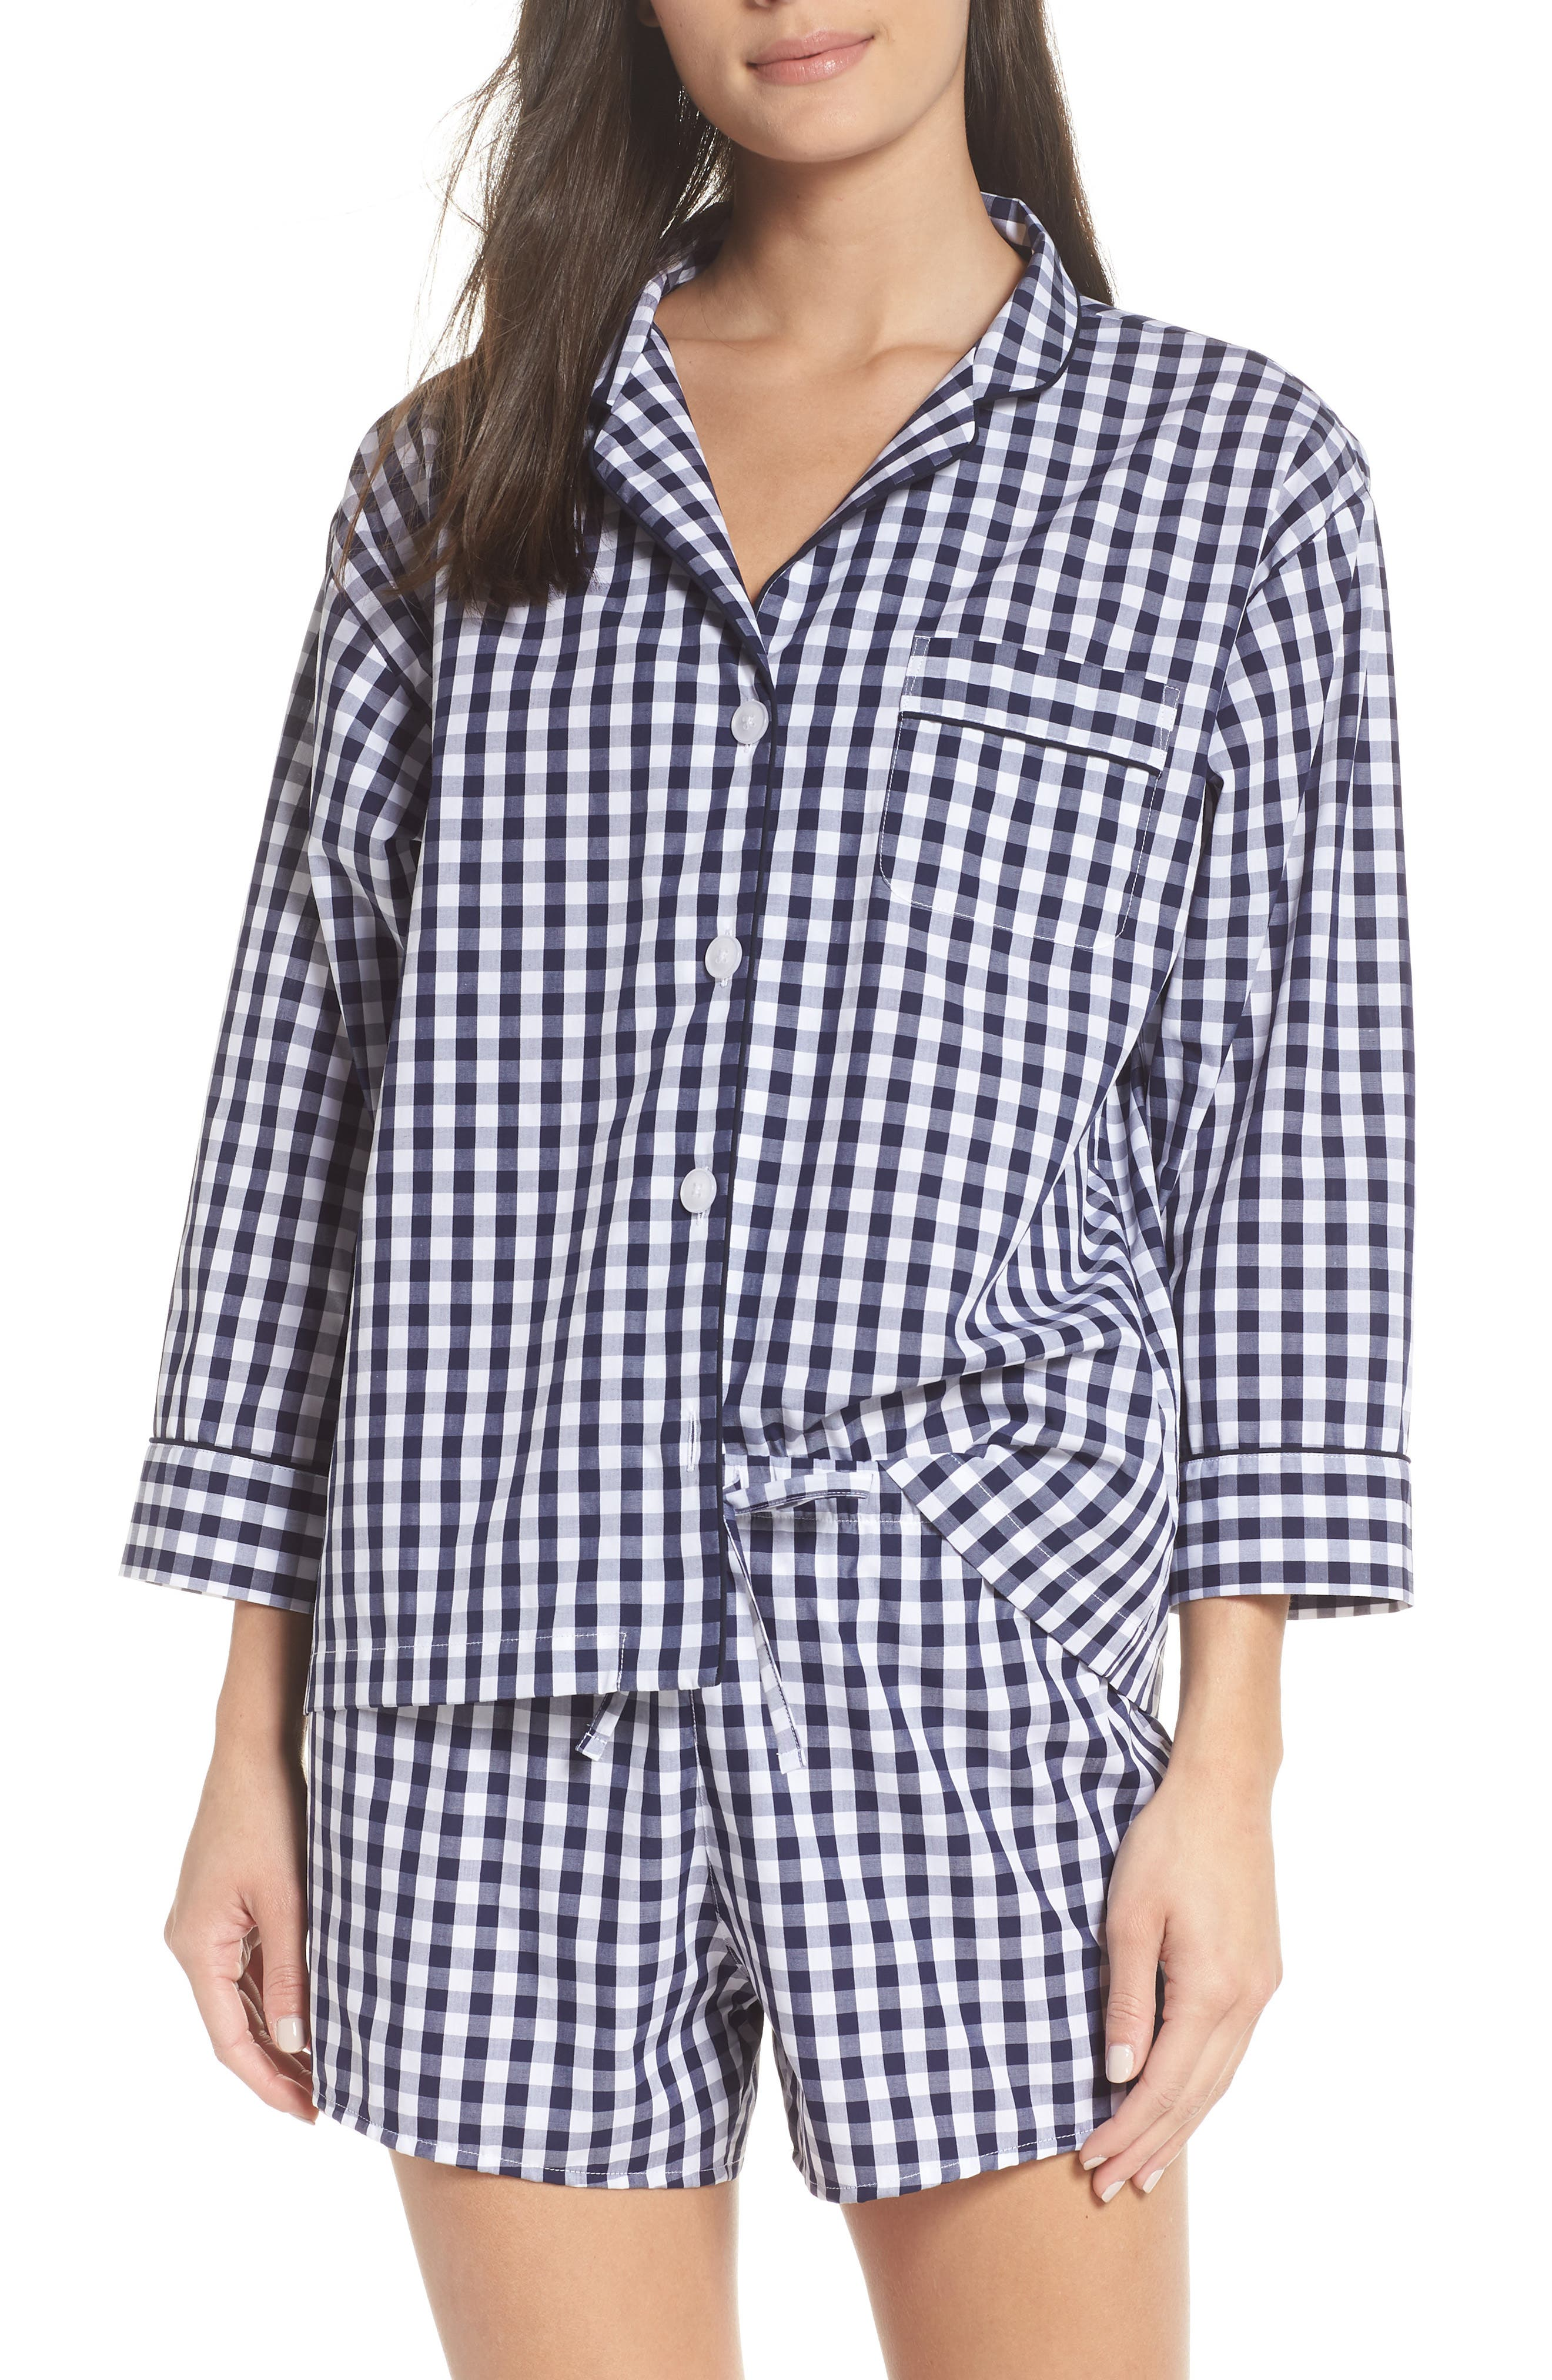 Paloma Women's Pajama Shorts,                             Alternate thumbnail 7, color,                             LARGE GINGHAM BLUE